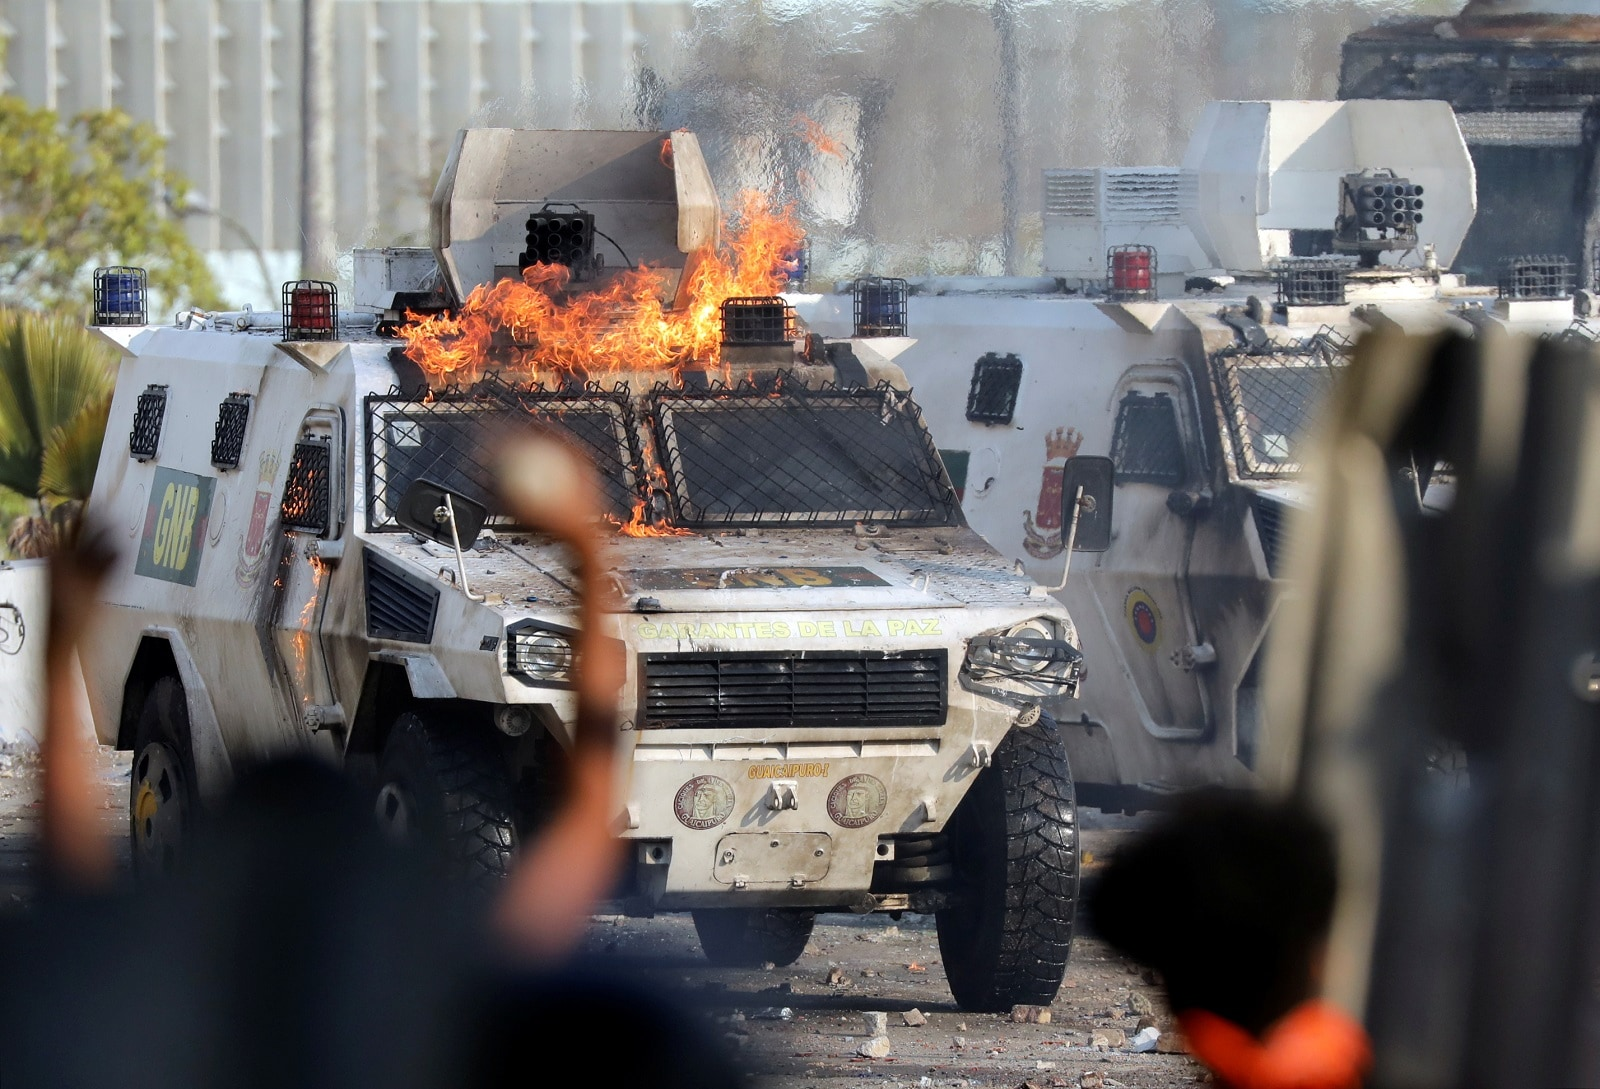 Demonstrators react in front of a burning military vehicle during clashes with security forces in Caracas, Venezuela May 1, 2019. REUTERS/Manaure Quintero